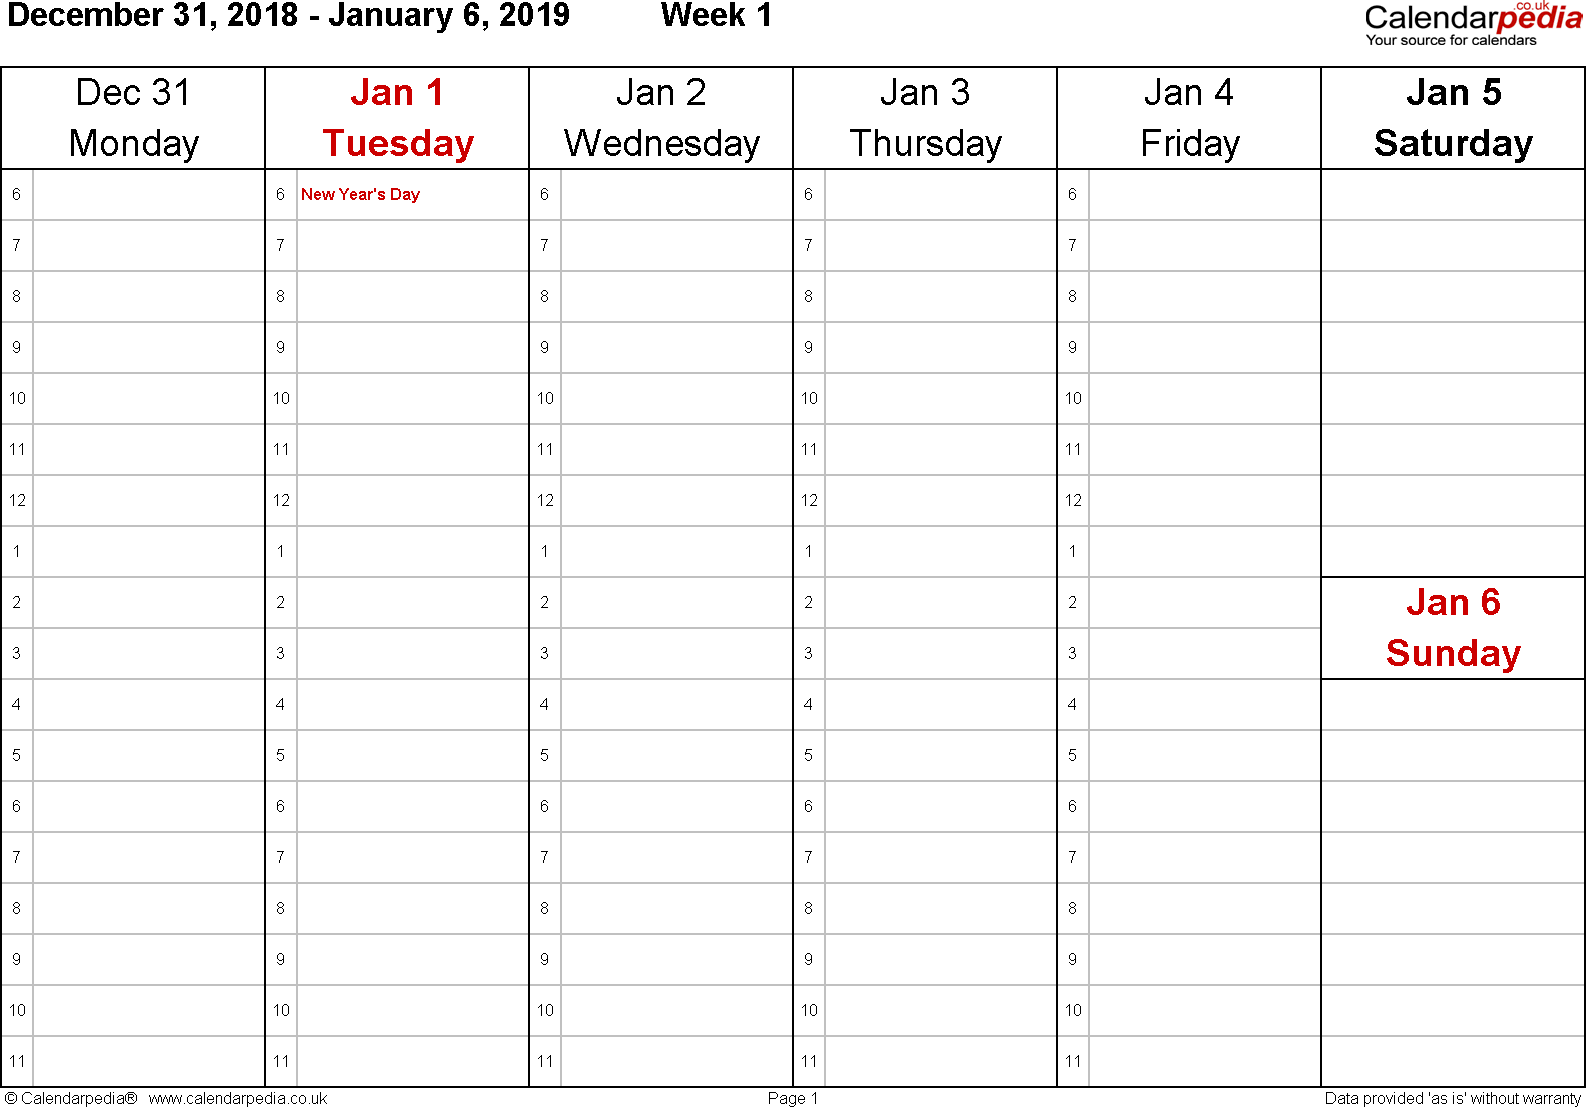 PDF template 4: Weekly calendar 2019, landscape orientation, 53 pages (1 calendar week on 1 page), time management layout (1 hour steps), Saturday & Sunday share one column